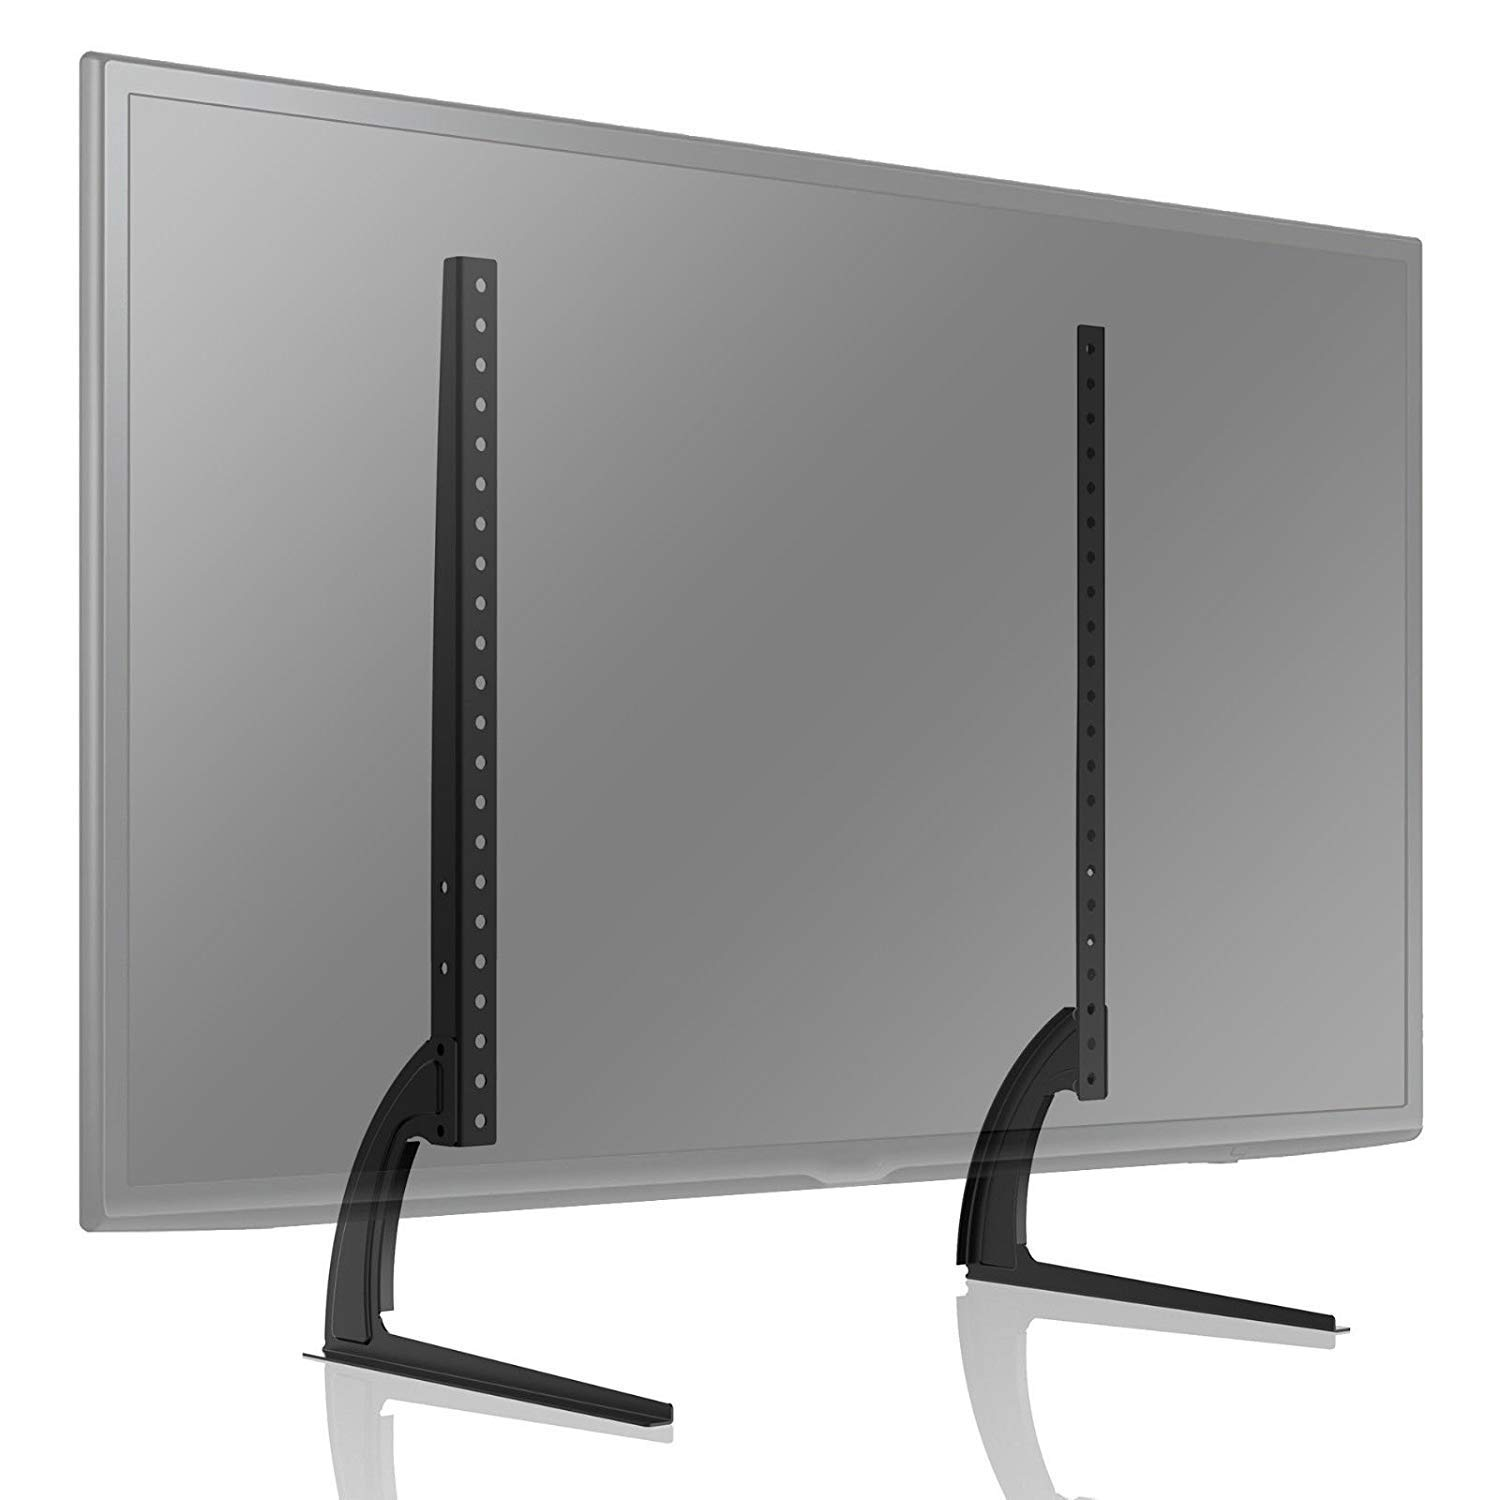 TAVR Universal Table Top TV Stand for Most 27 30 32 37 40 42 47 50 55 60 65 inch Plasma LCD LED Flat or Curved Screen TVs with Height Adjustment,VESA Patterns up to 800mm x 500mm,88 Lbs,UT3001 by TAVR Furniture